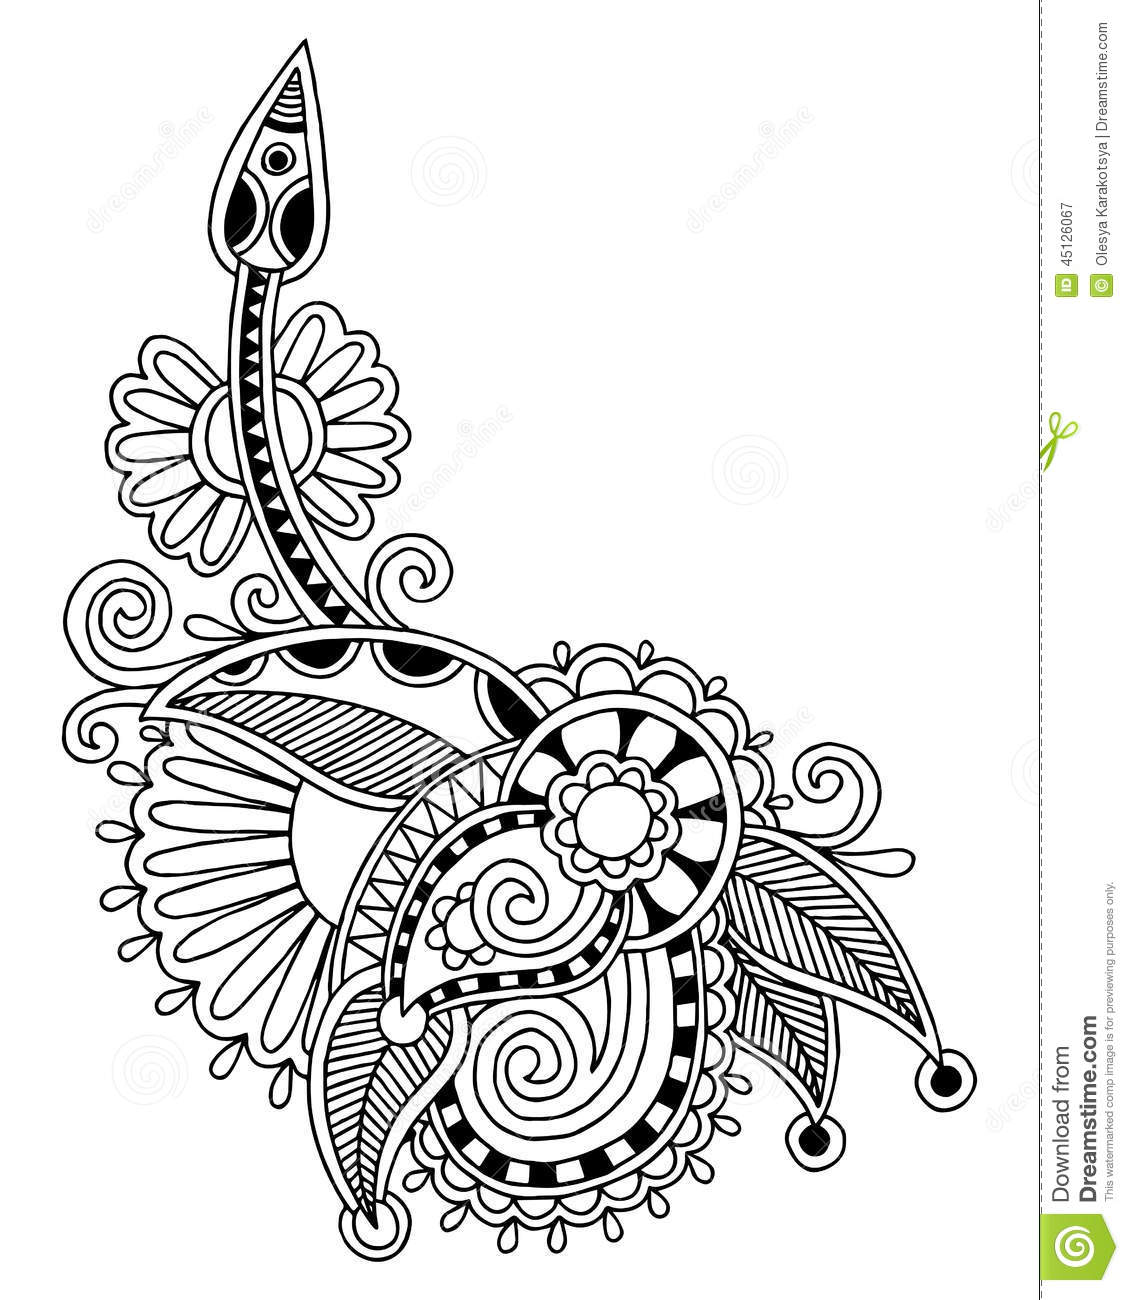 Line Art Styles : Black line art ornate flower design ukrainian vector